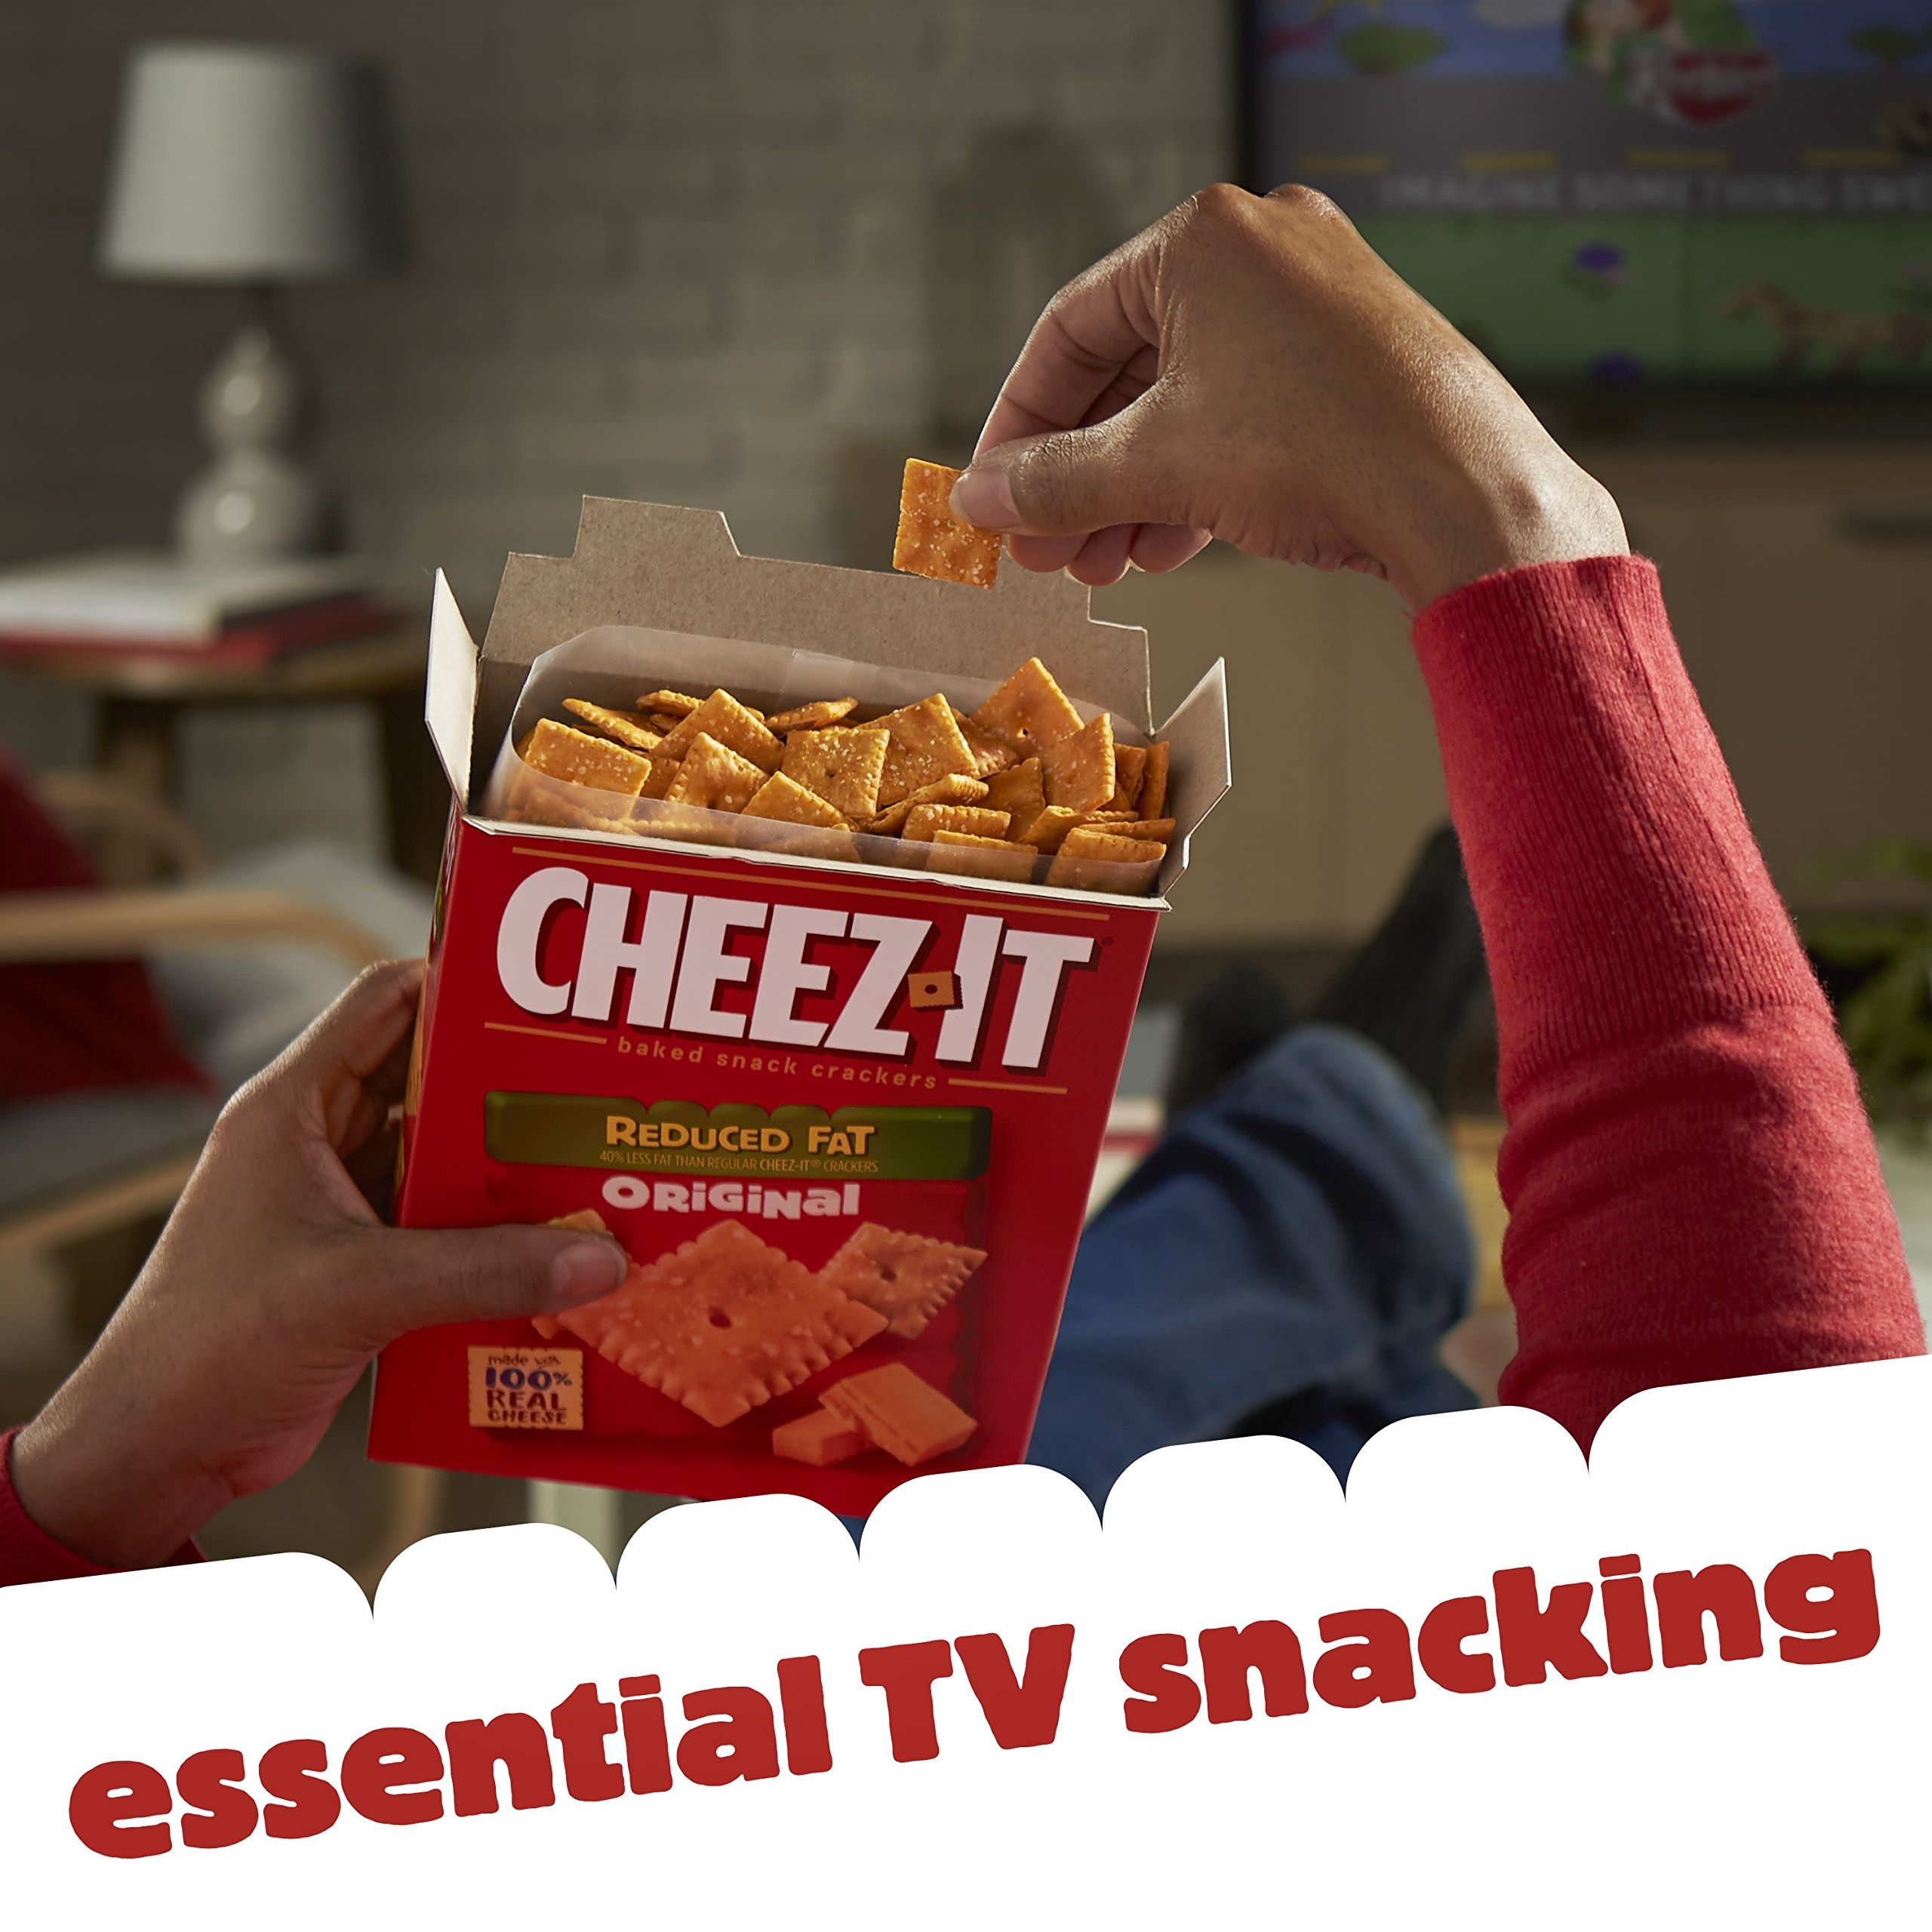 Cheez-It Baked Snack Cheese Crackers, Reduced Fat, Original, 6 oz Box(Pack of 12) by Cheez-It (Image #7)